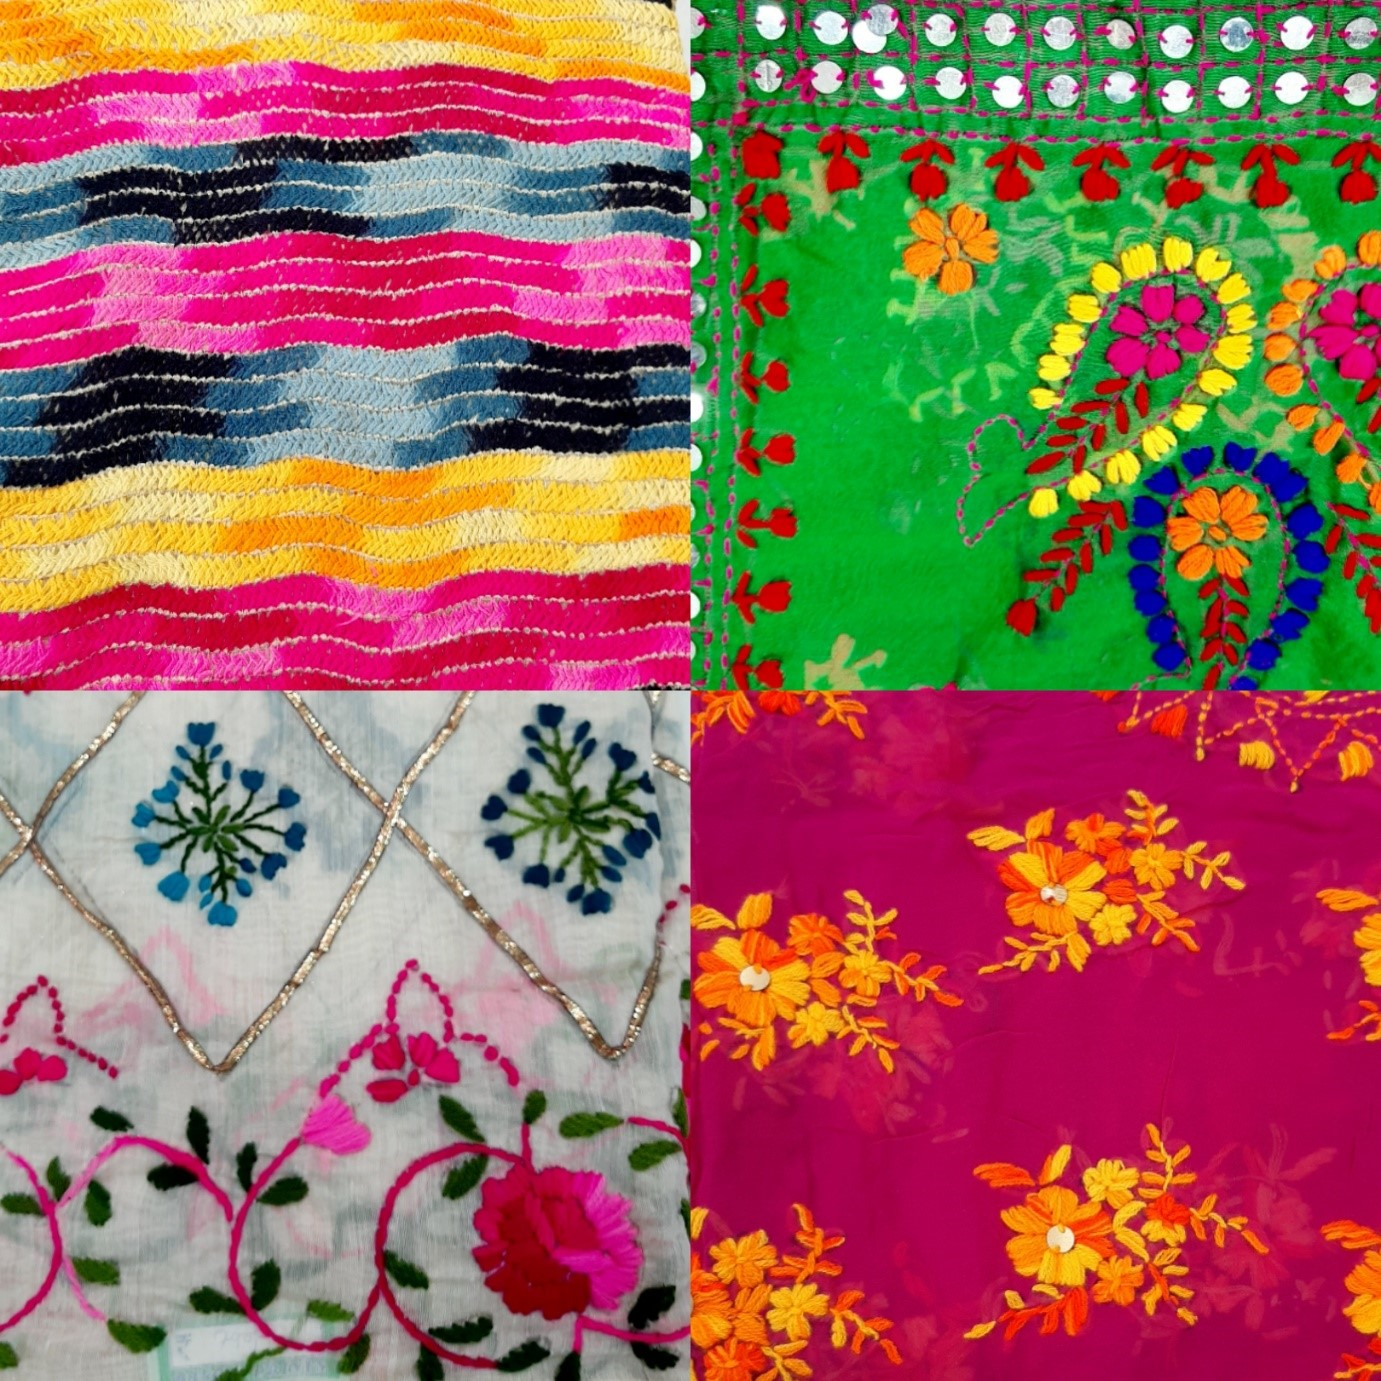 Phulkari dupatta, hand embroidered dupatta, colorful dupattas, odhanis, navratri, mirror work, chunni, pink, white, green, Baroda prints,